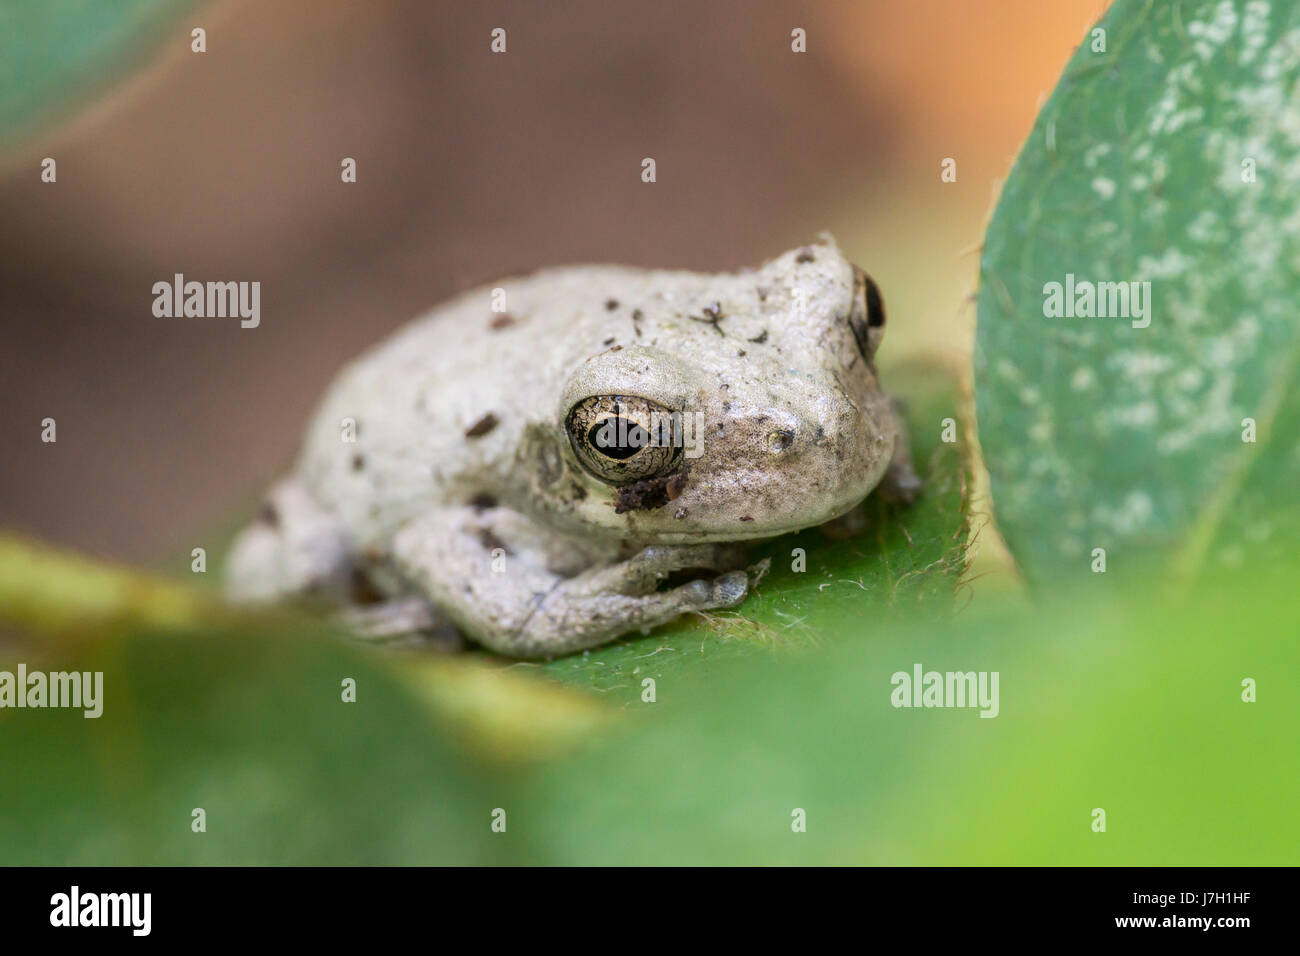 White toad on a leaf in the garden bushes Stock Photo